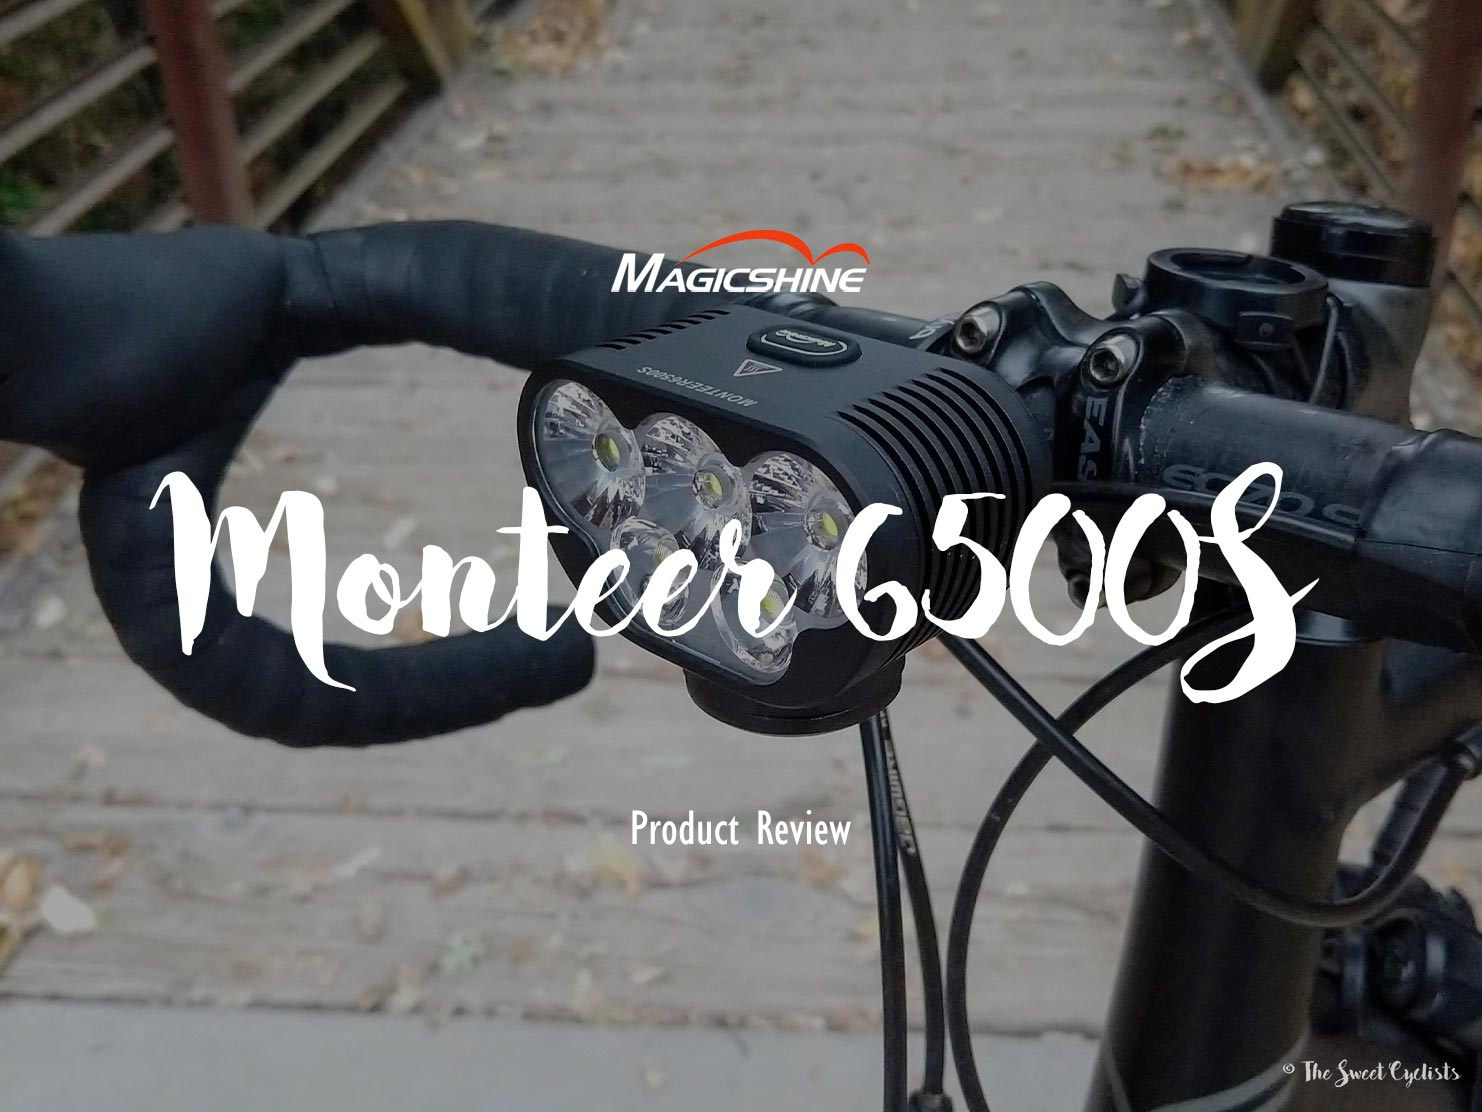 The New & Improved Monteer 6500 with USB-C and better optics